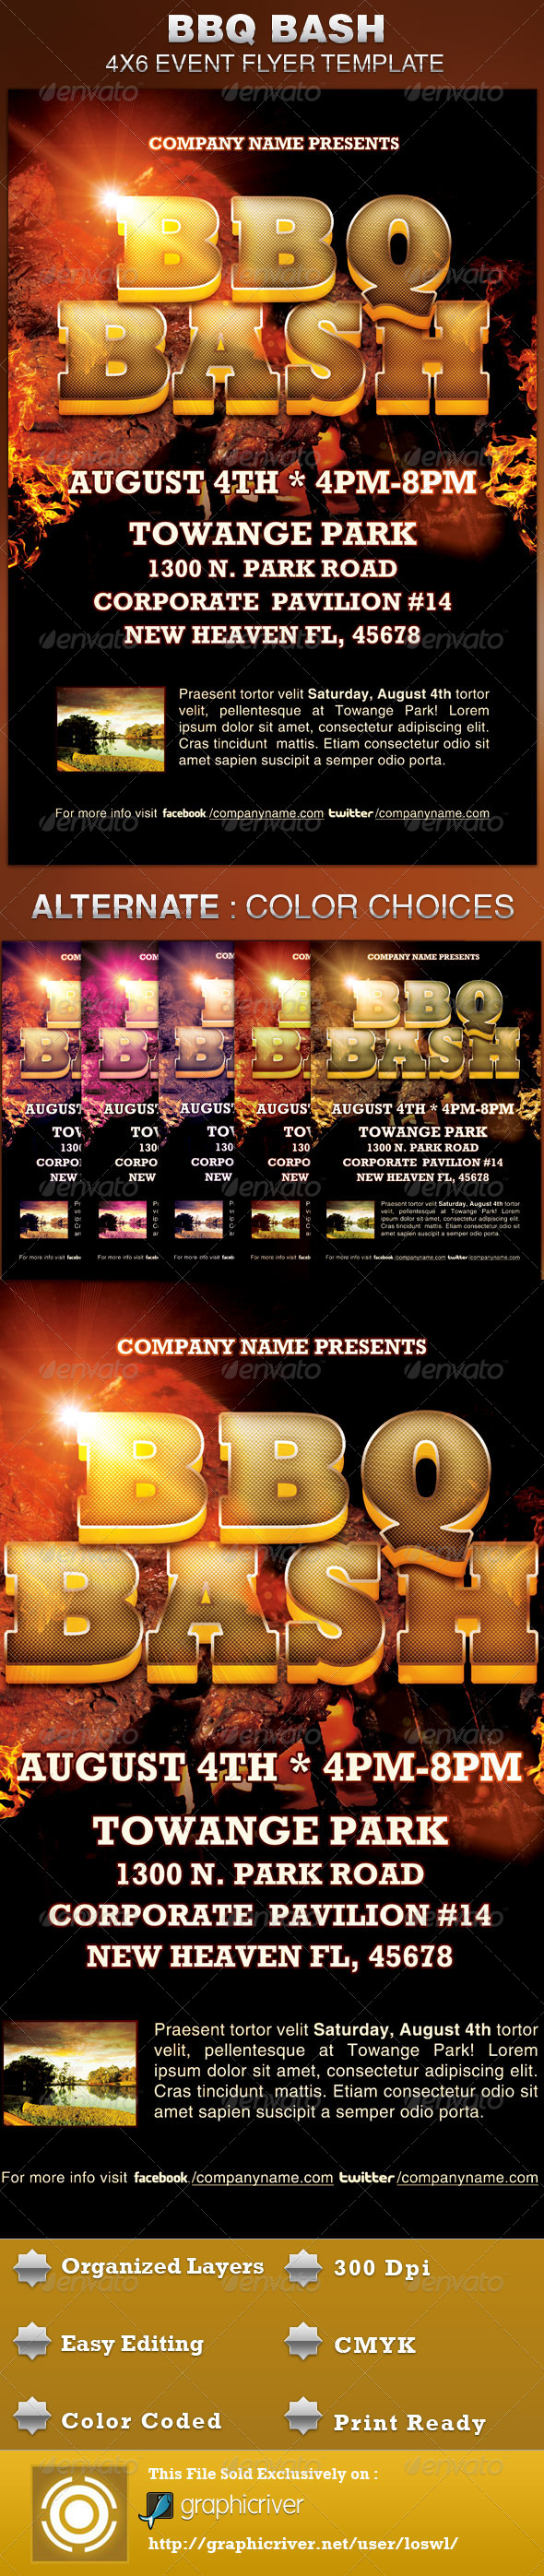 GraphicRiver BBQ Bash Event Flyer Template 4575825